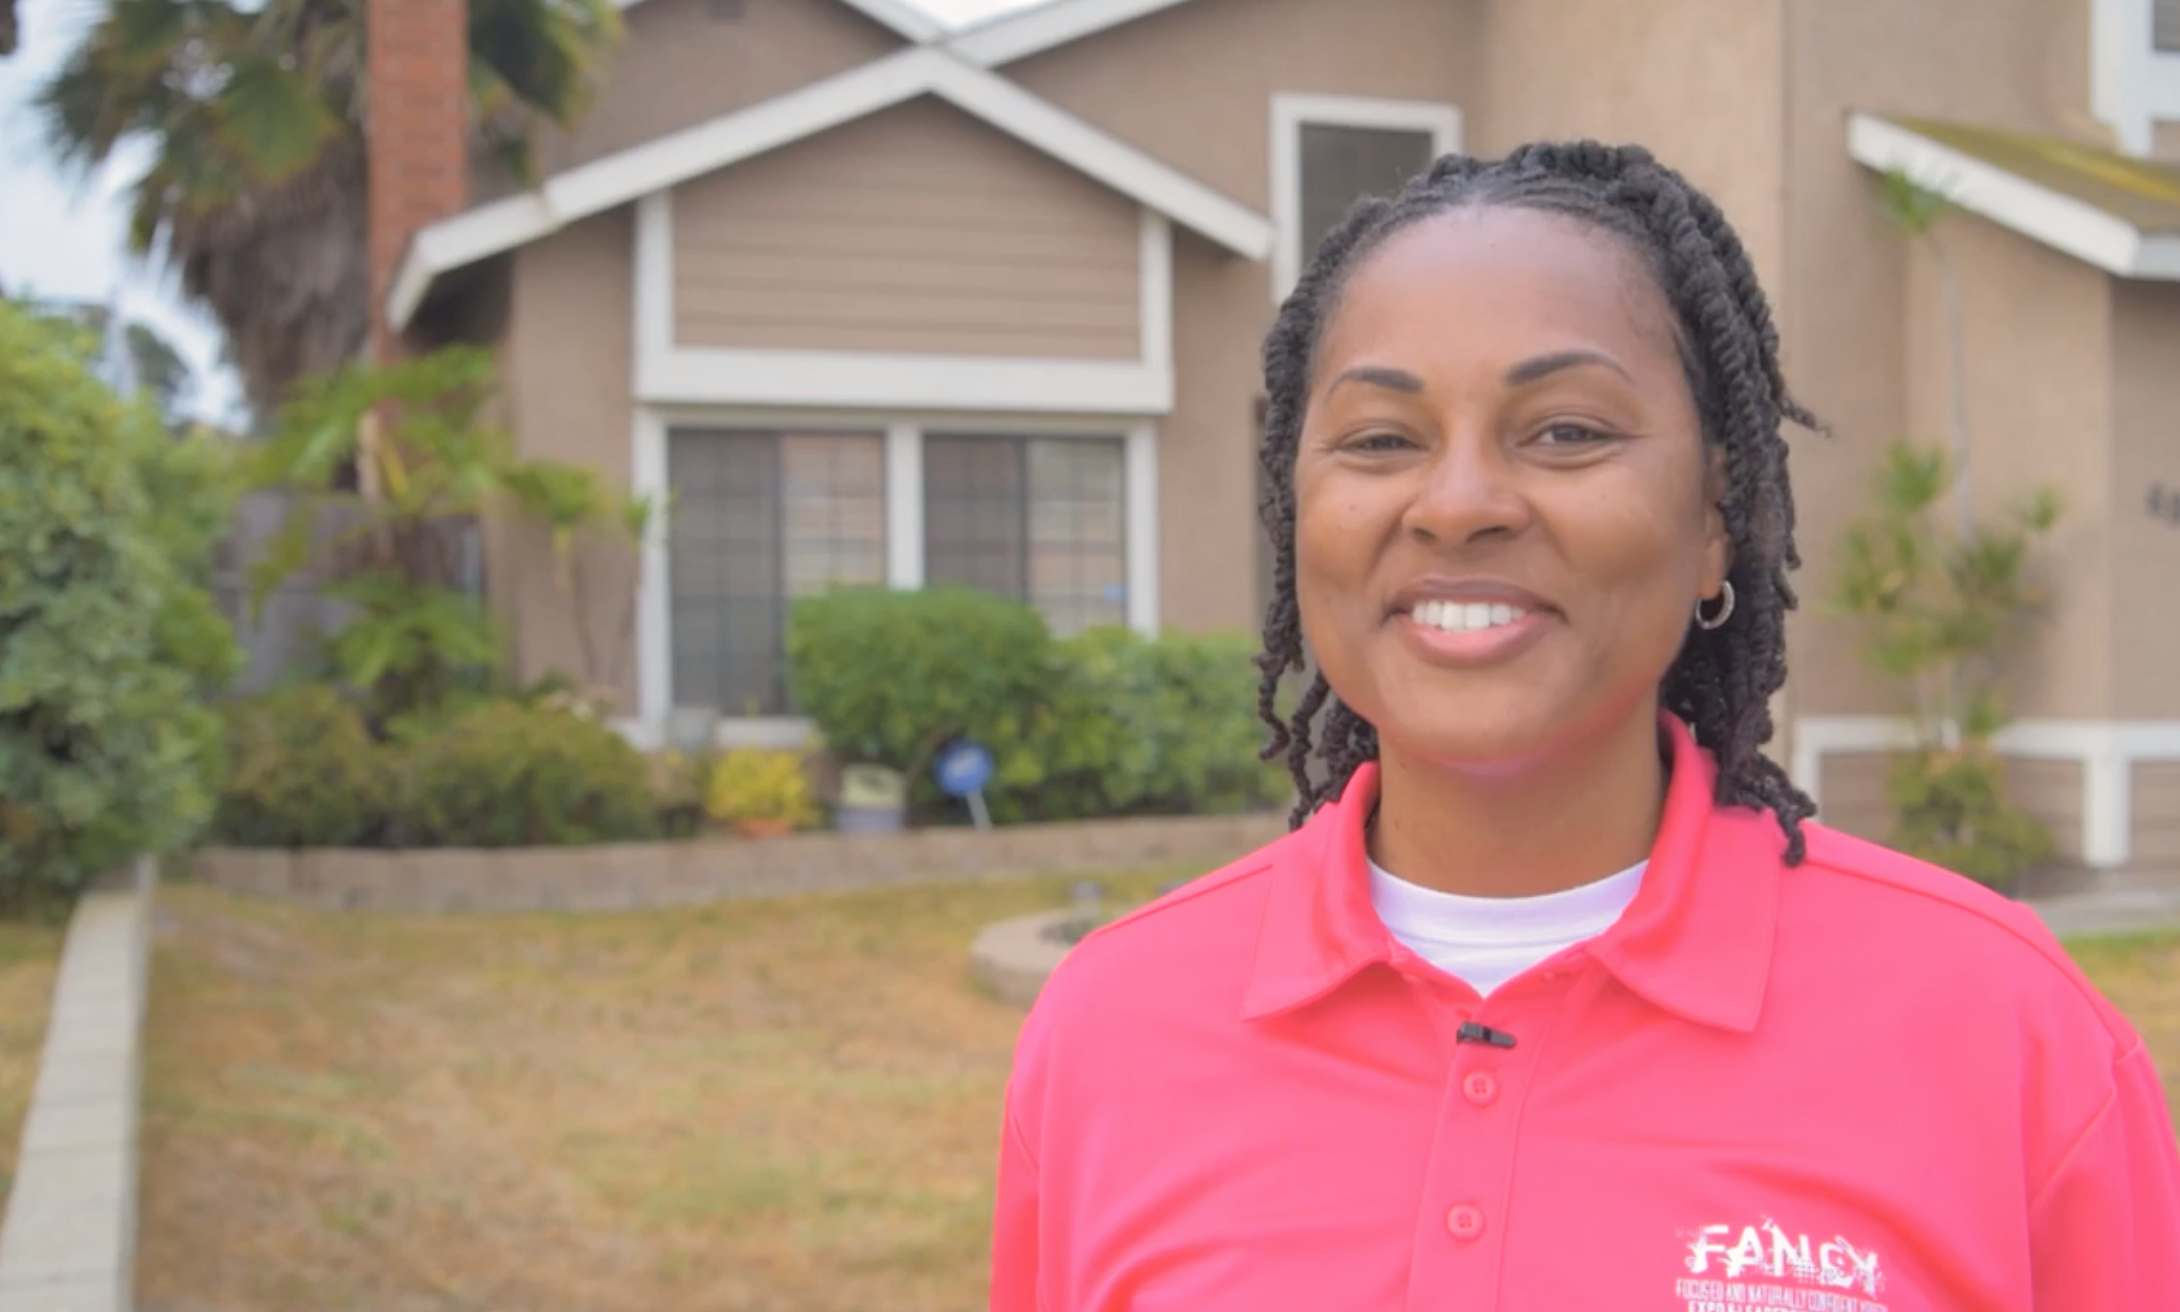 Tinesia Conwright: A Fellow's Journey